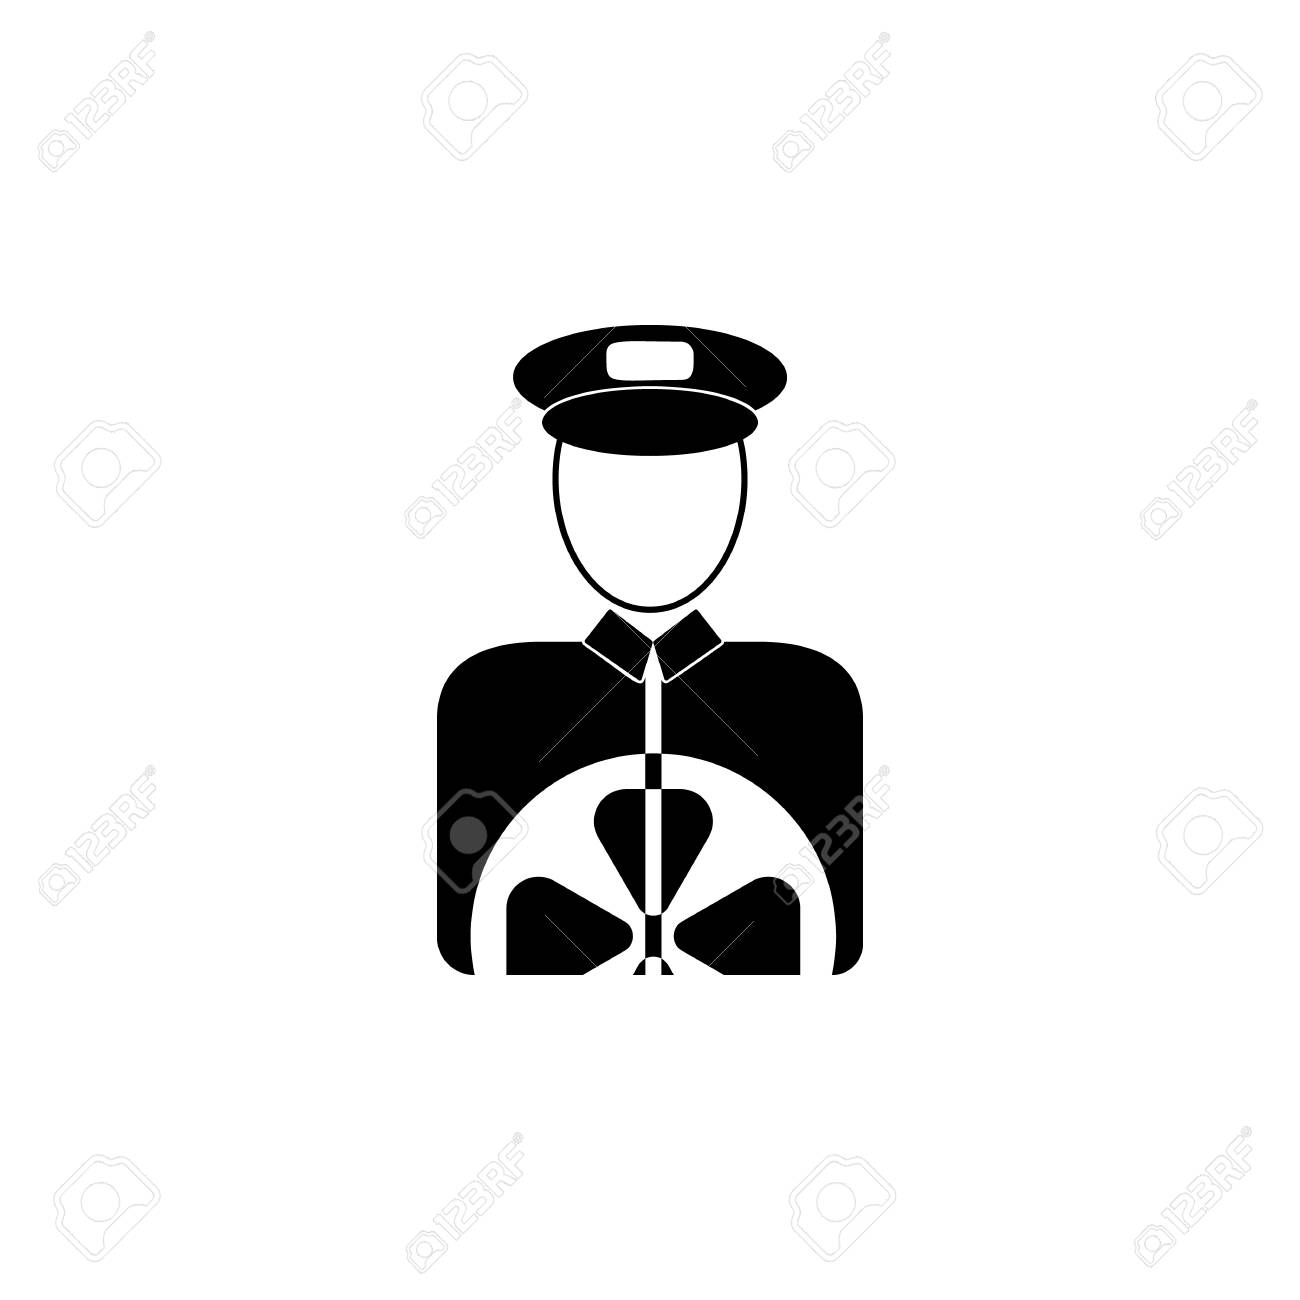 Chauffeur's avatar icon in black and white Illustration. - 96898726